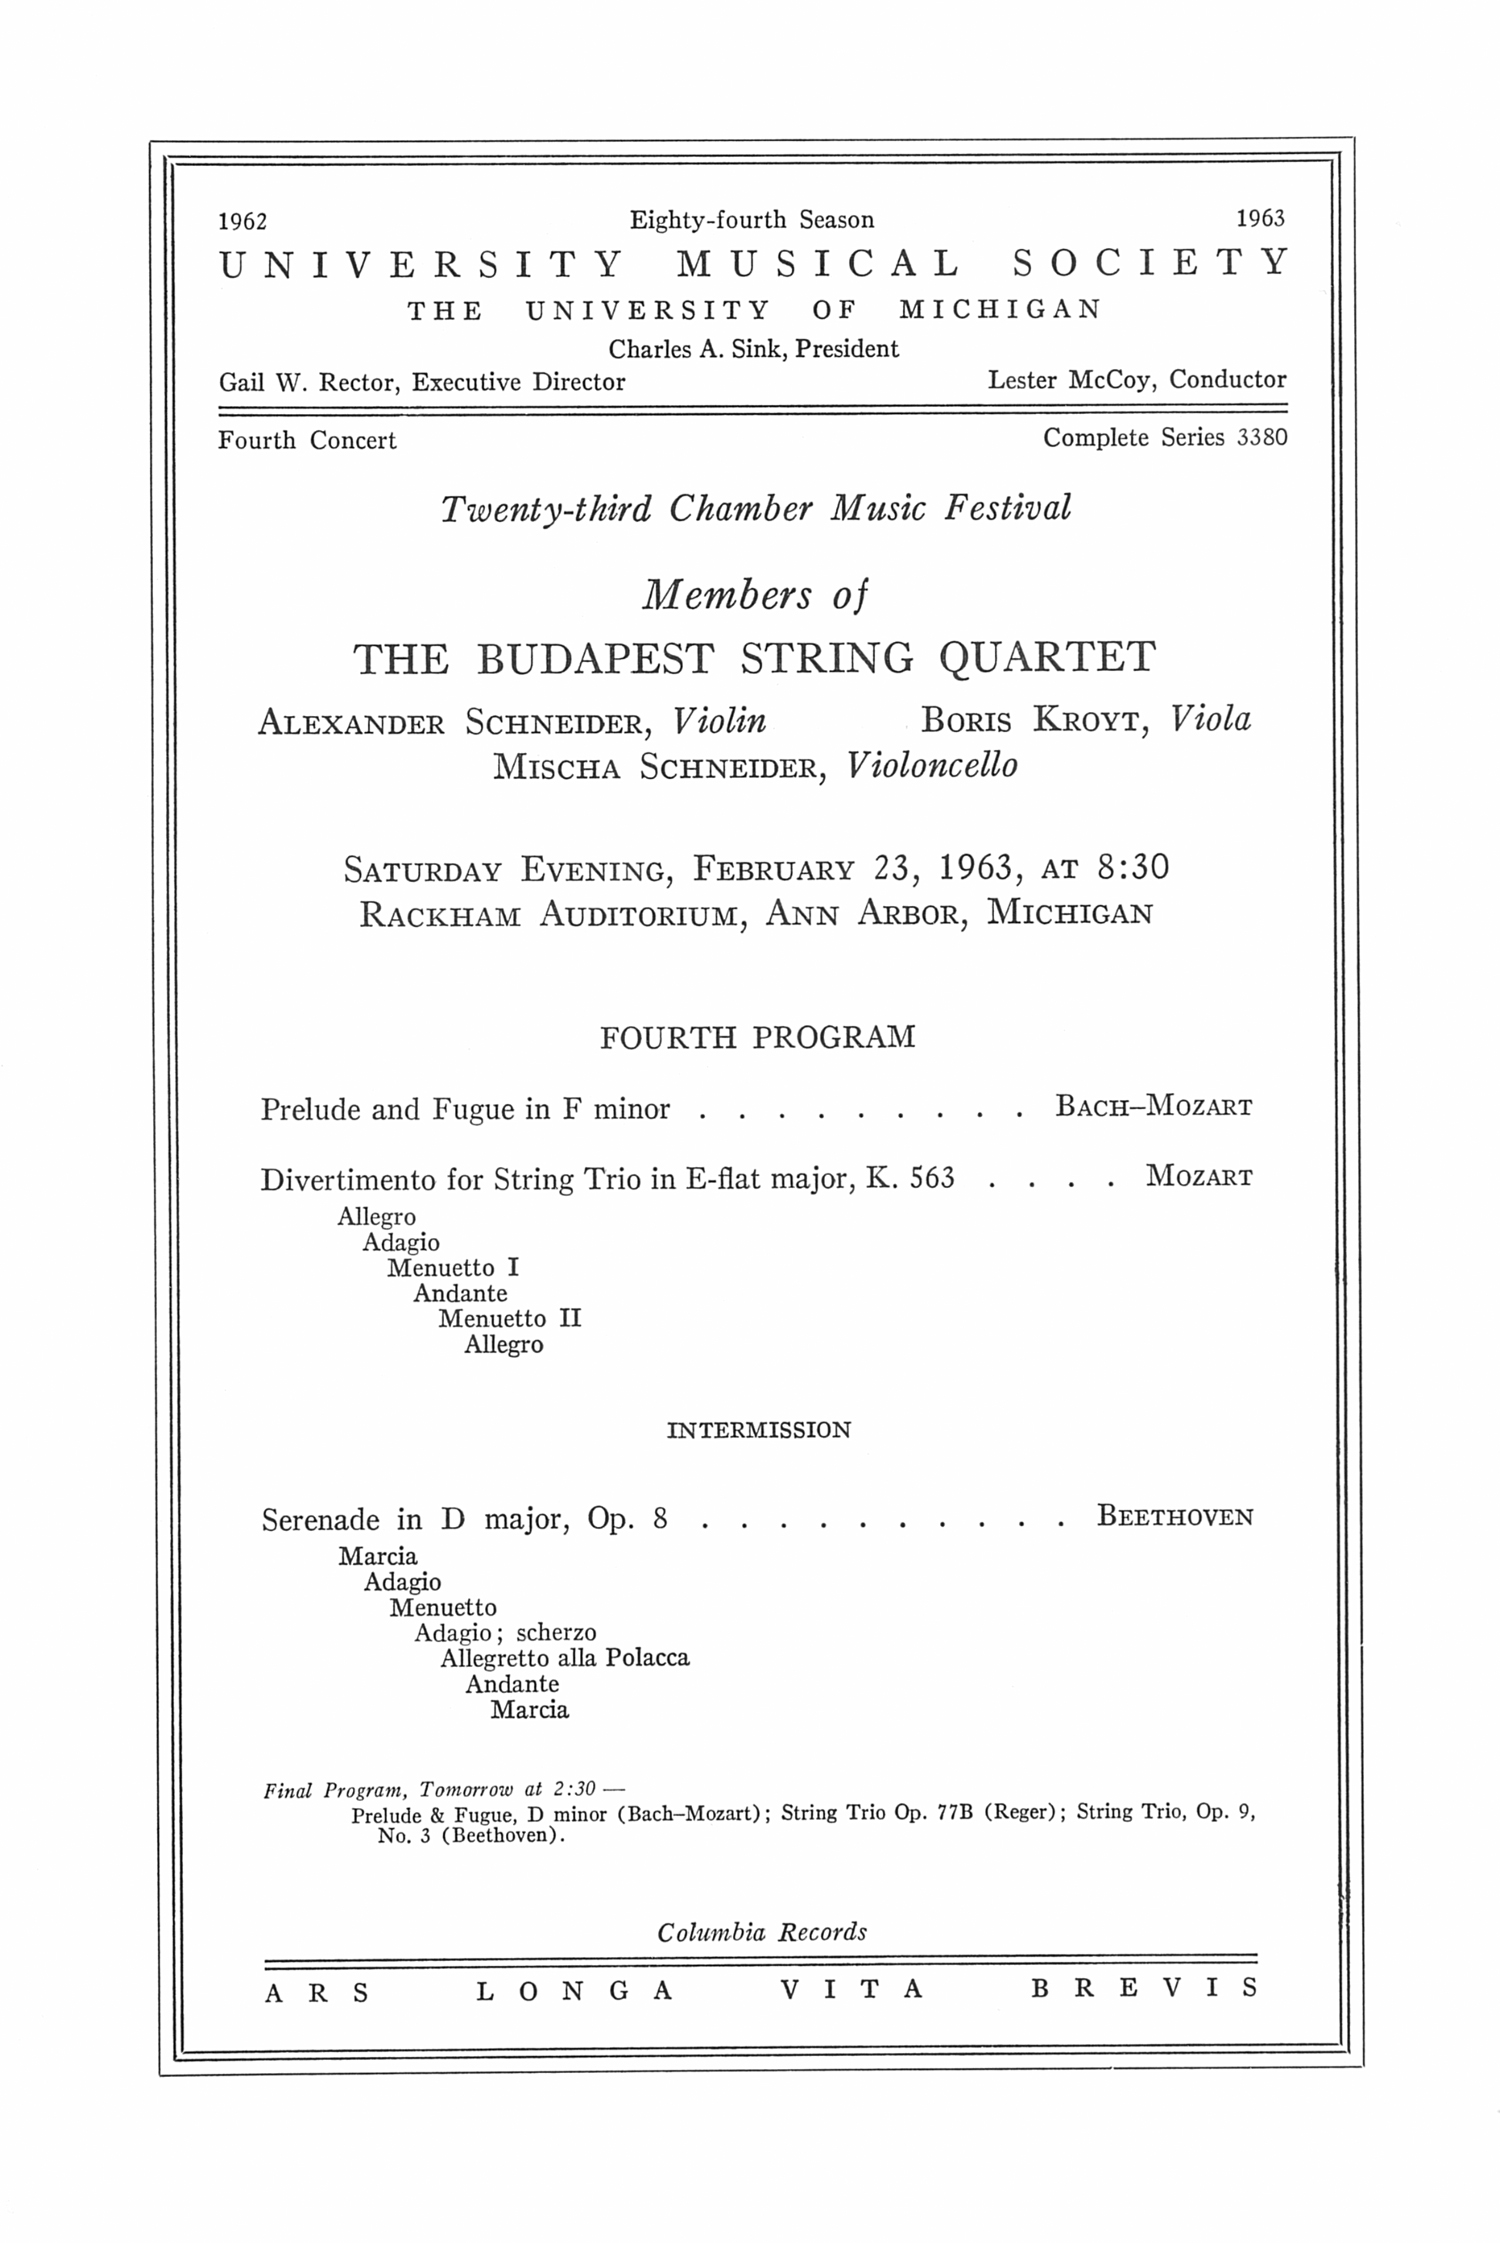 UMS Concert Program, February 23, 1963: The Budapest String Quartet --  image